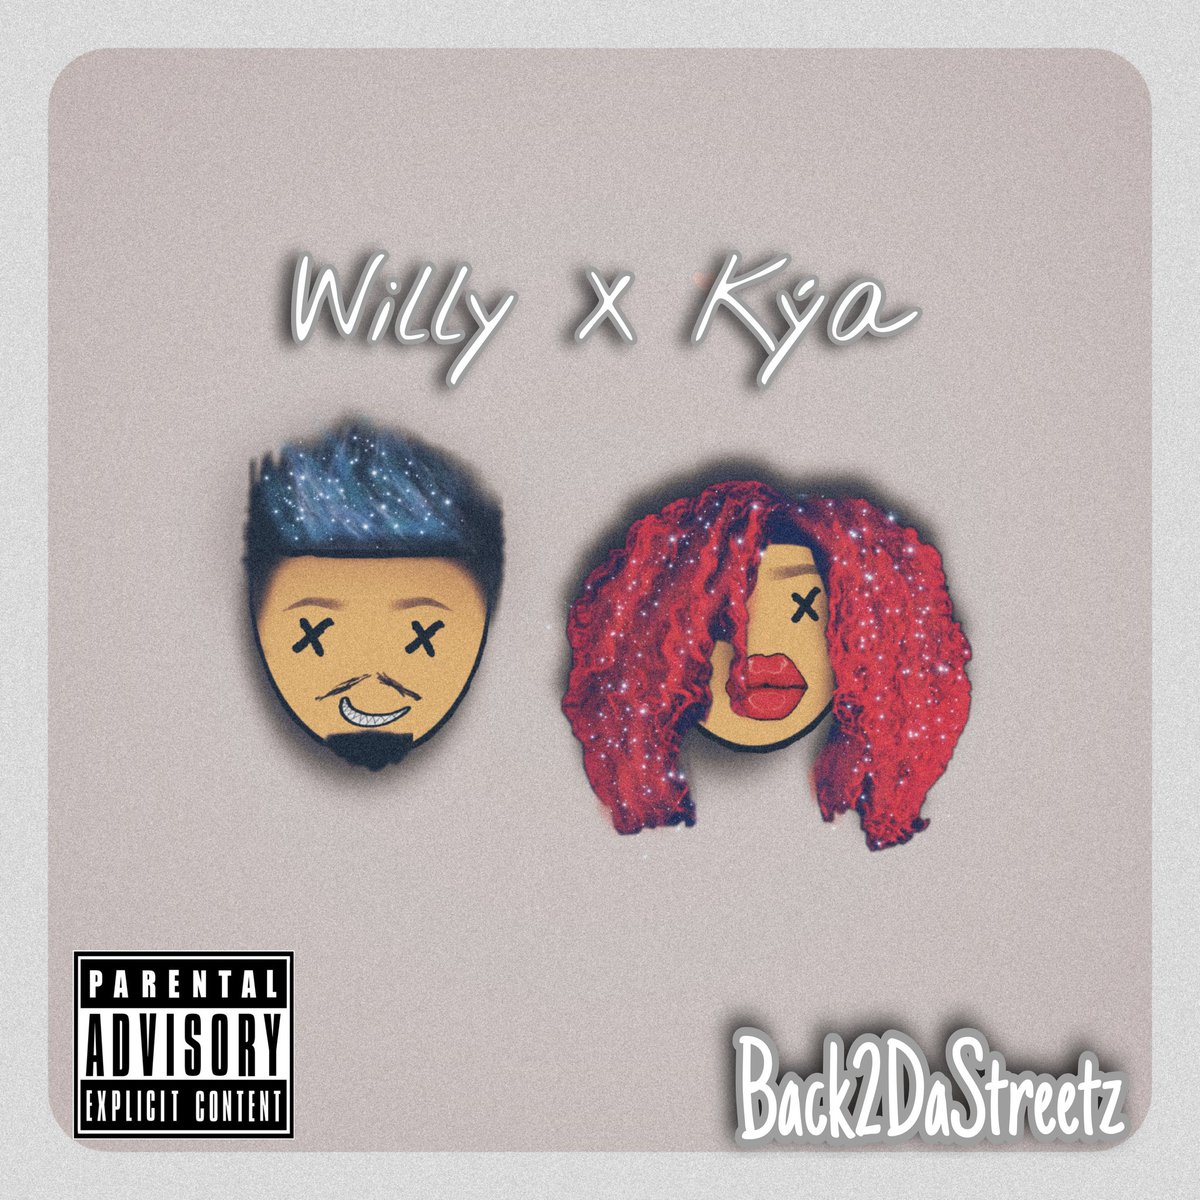 New Single Coming‼ Release date will be posted soon‼😜🤪😘😏💯 #Back2DaStreetz #willy #mateo #willymateo #kyaRachel #overit #siblings #brother #sister #relationship #problems #fuck #love We love to talk that shit.😏